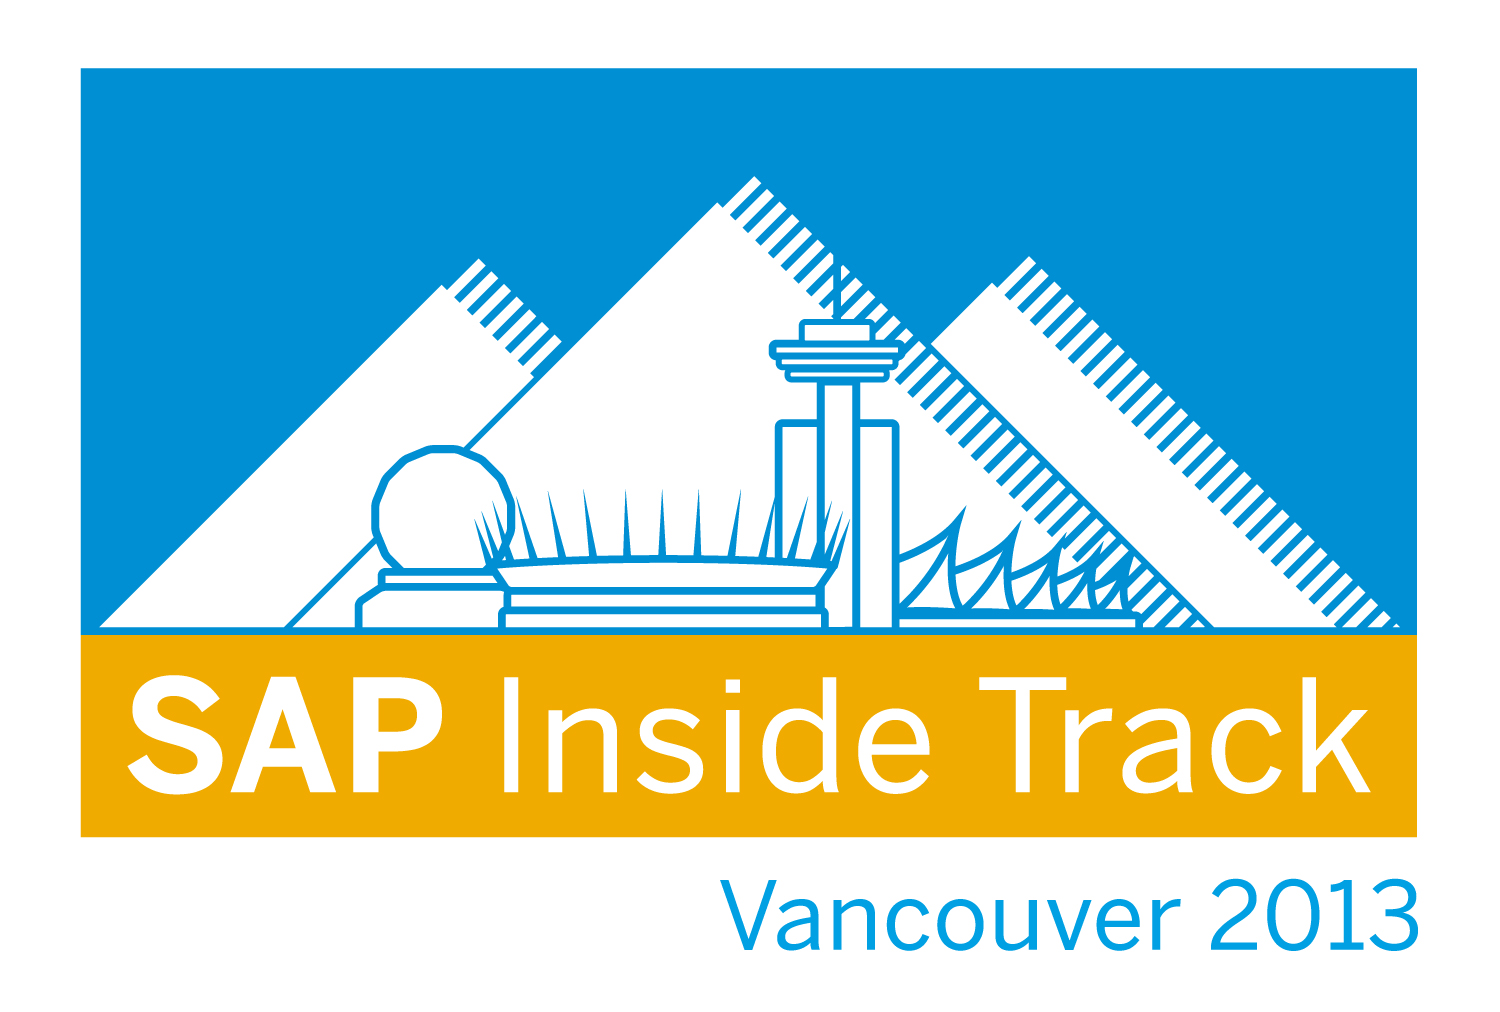 SAP-Inside-Track-Final-logo-RGB.jpg